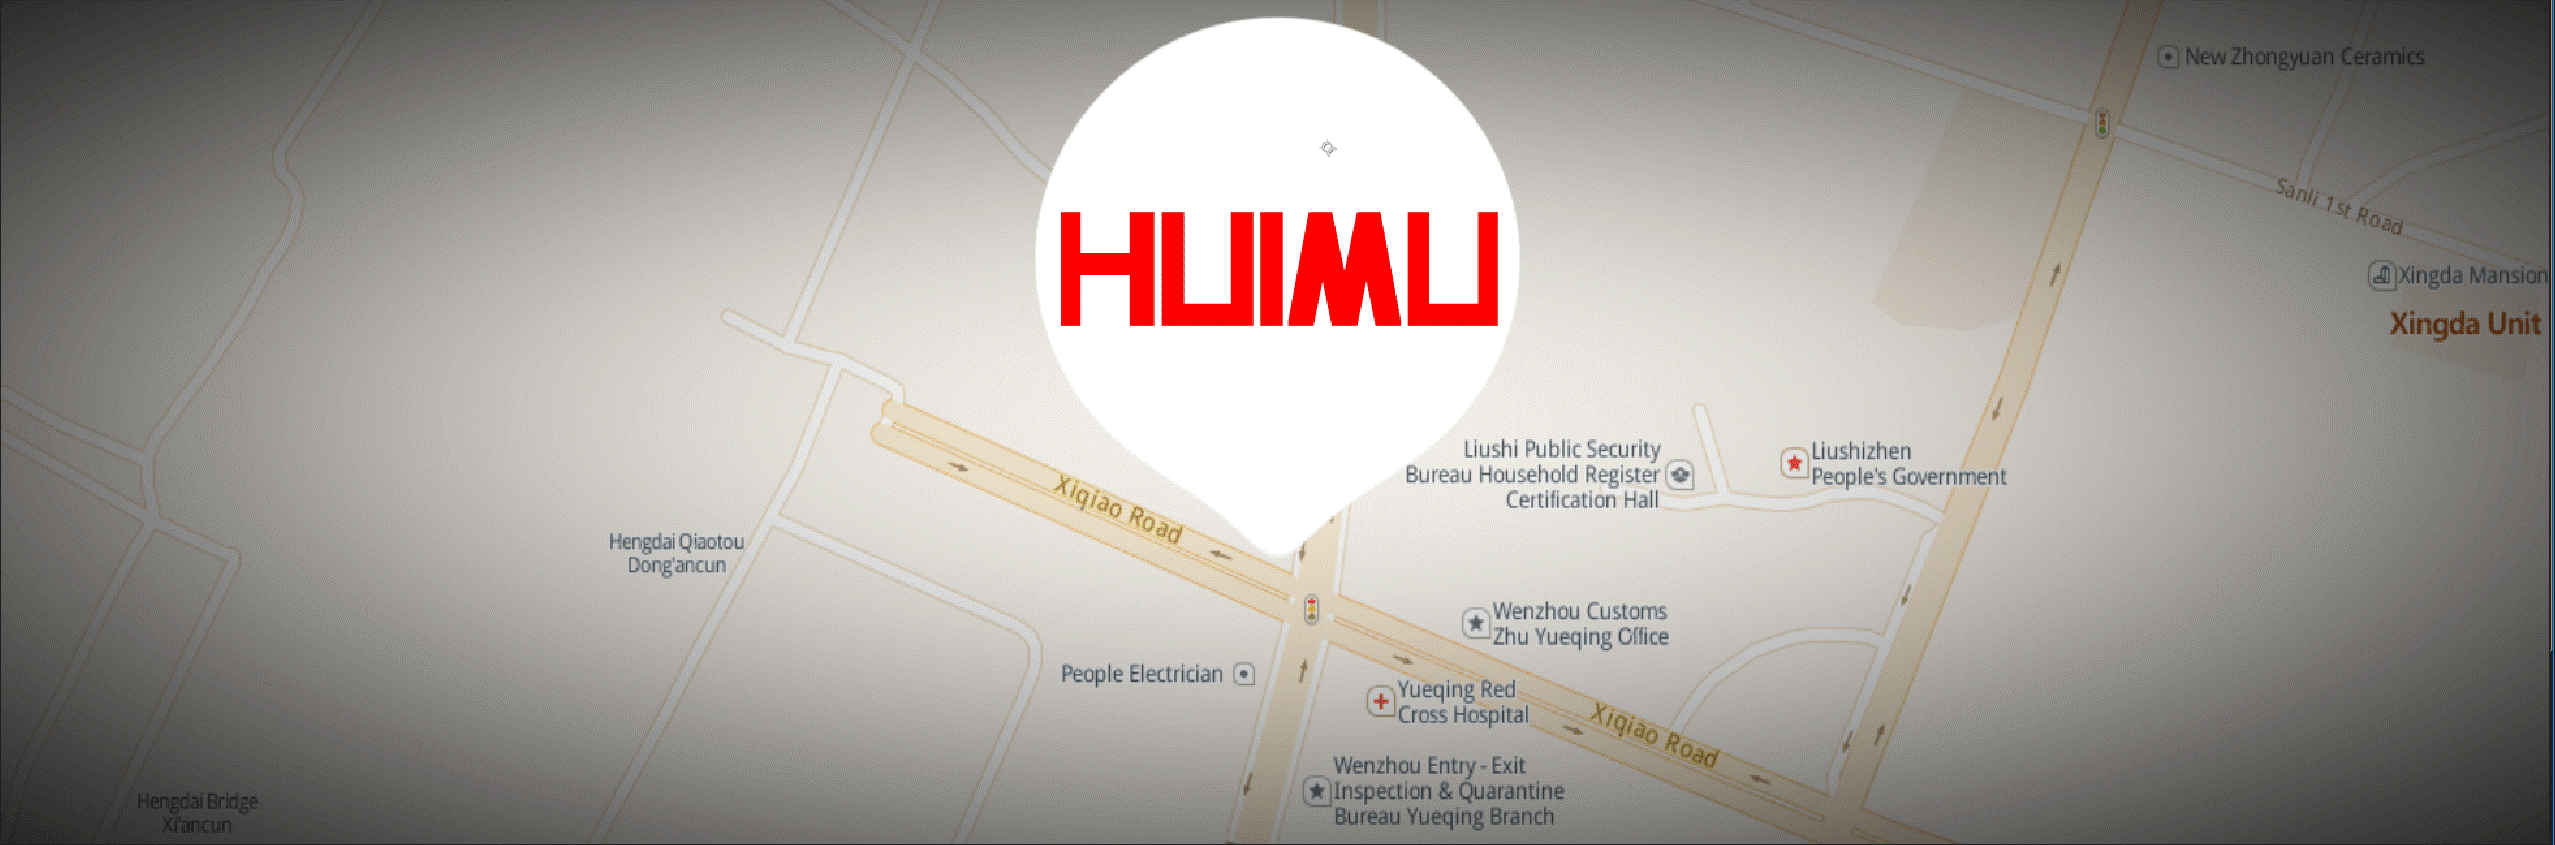 Solid State relays Manufacturer HUIMULTD location